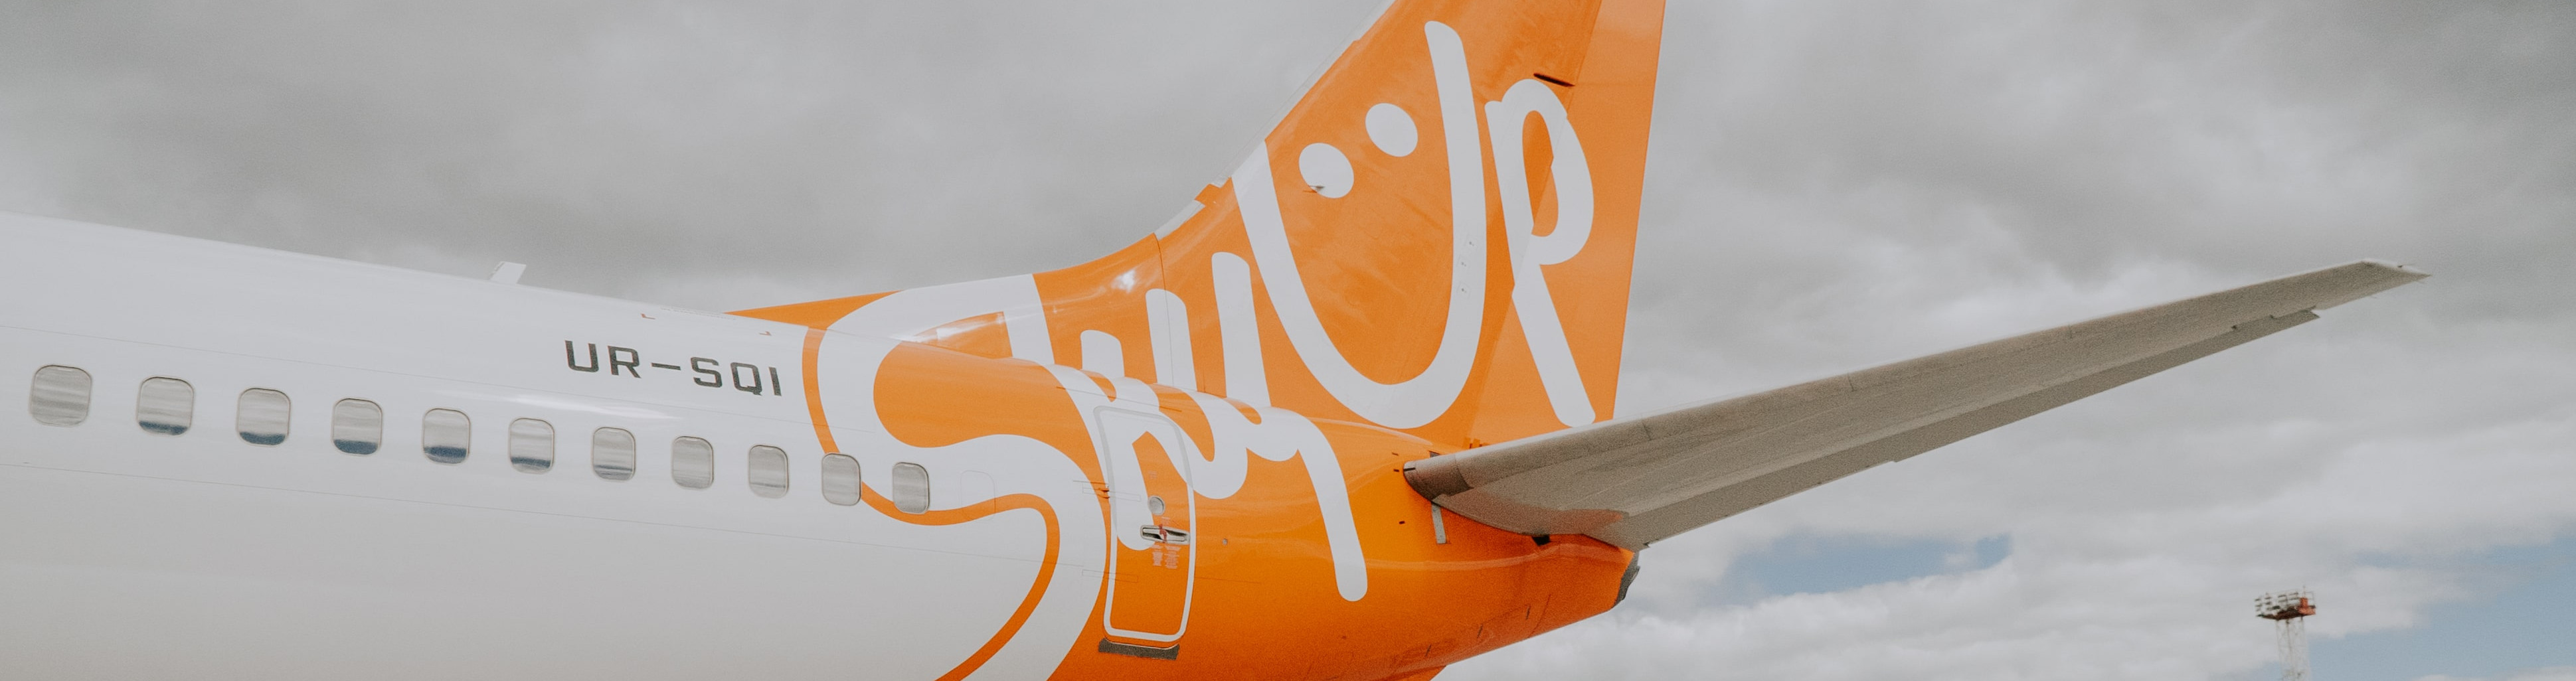 SkyUp in March: spring starts with new destinations and opportunities